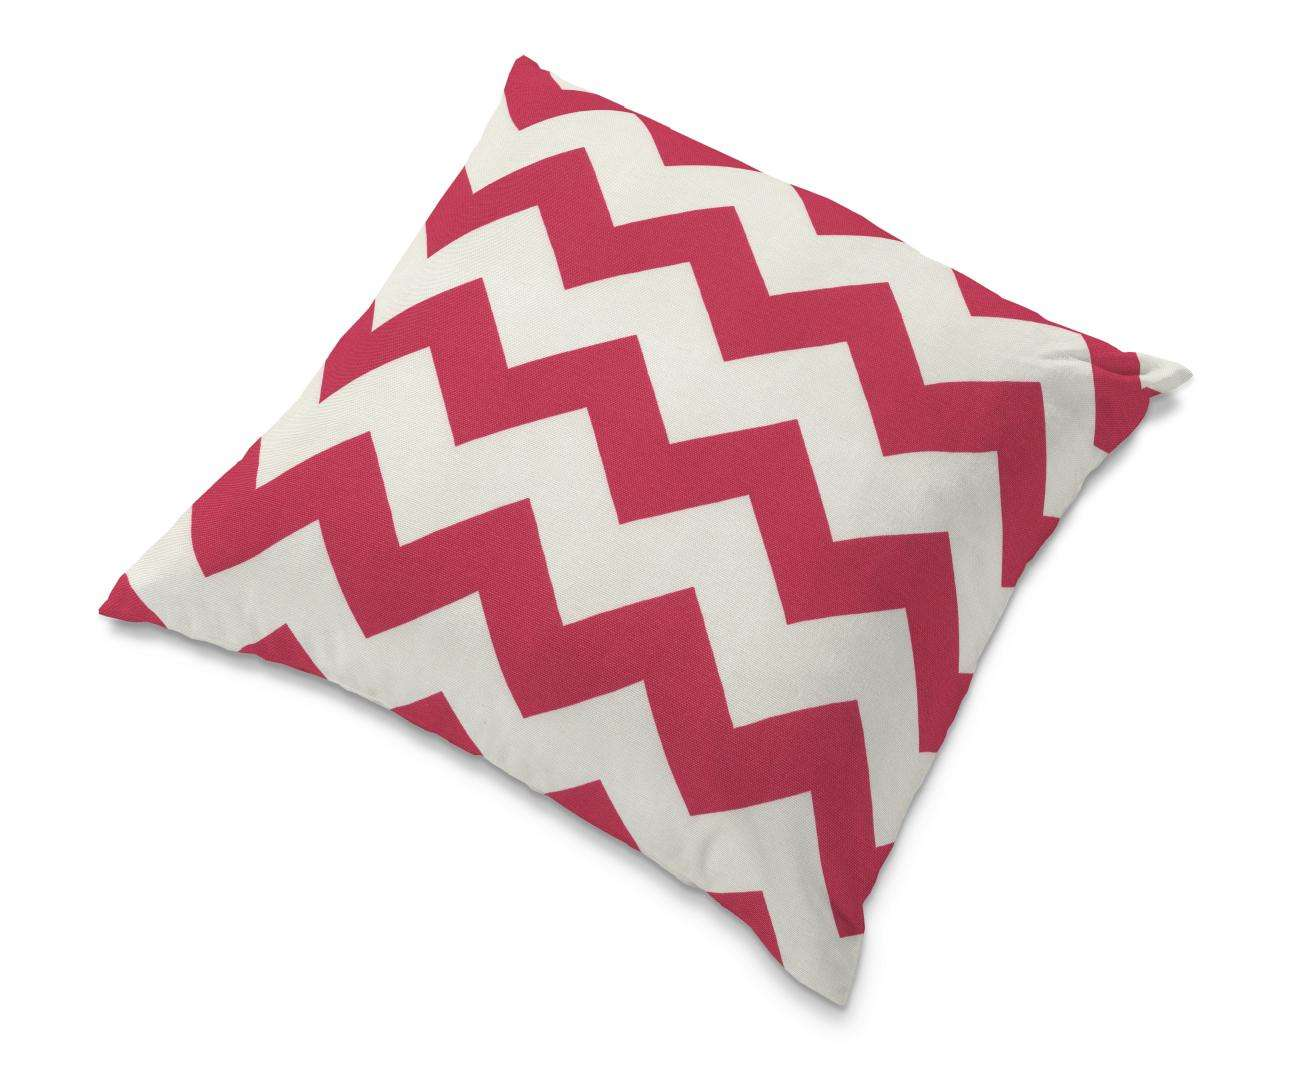 Tomelilla cushion cover 55 x 55 cm (22 x 22 inch) in collection Comic Book & Geo Prints, fabric: 135-00